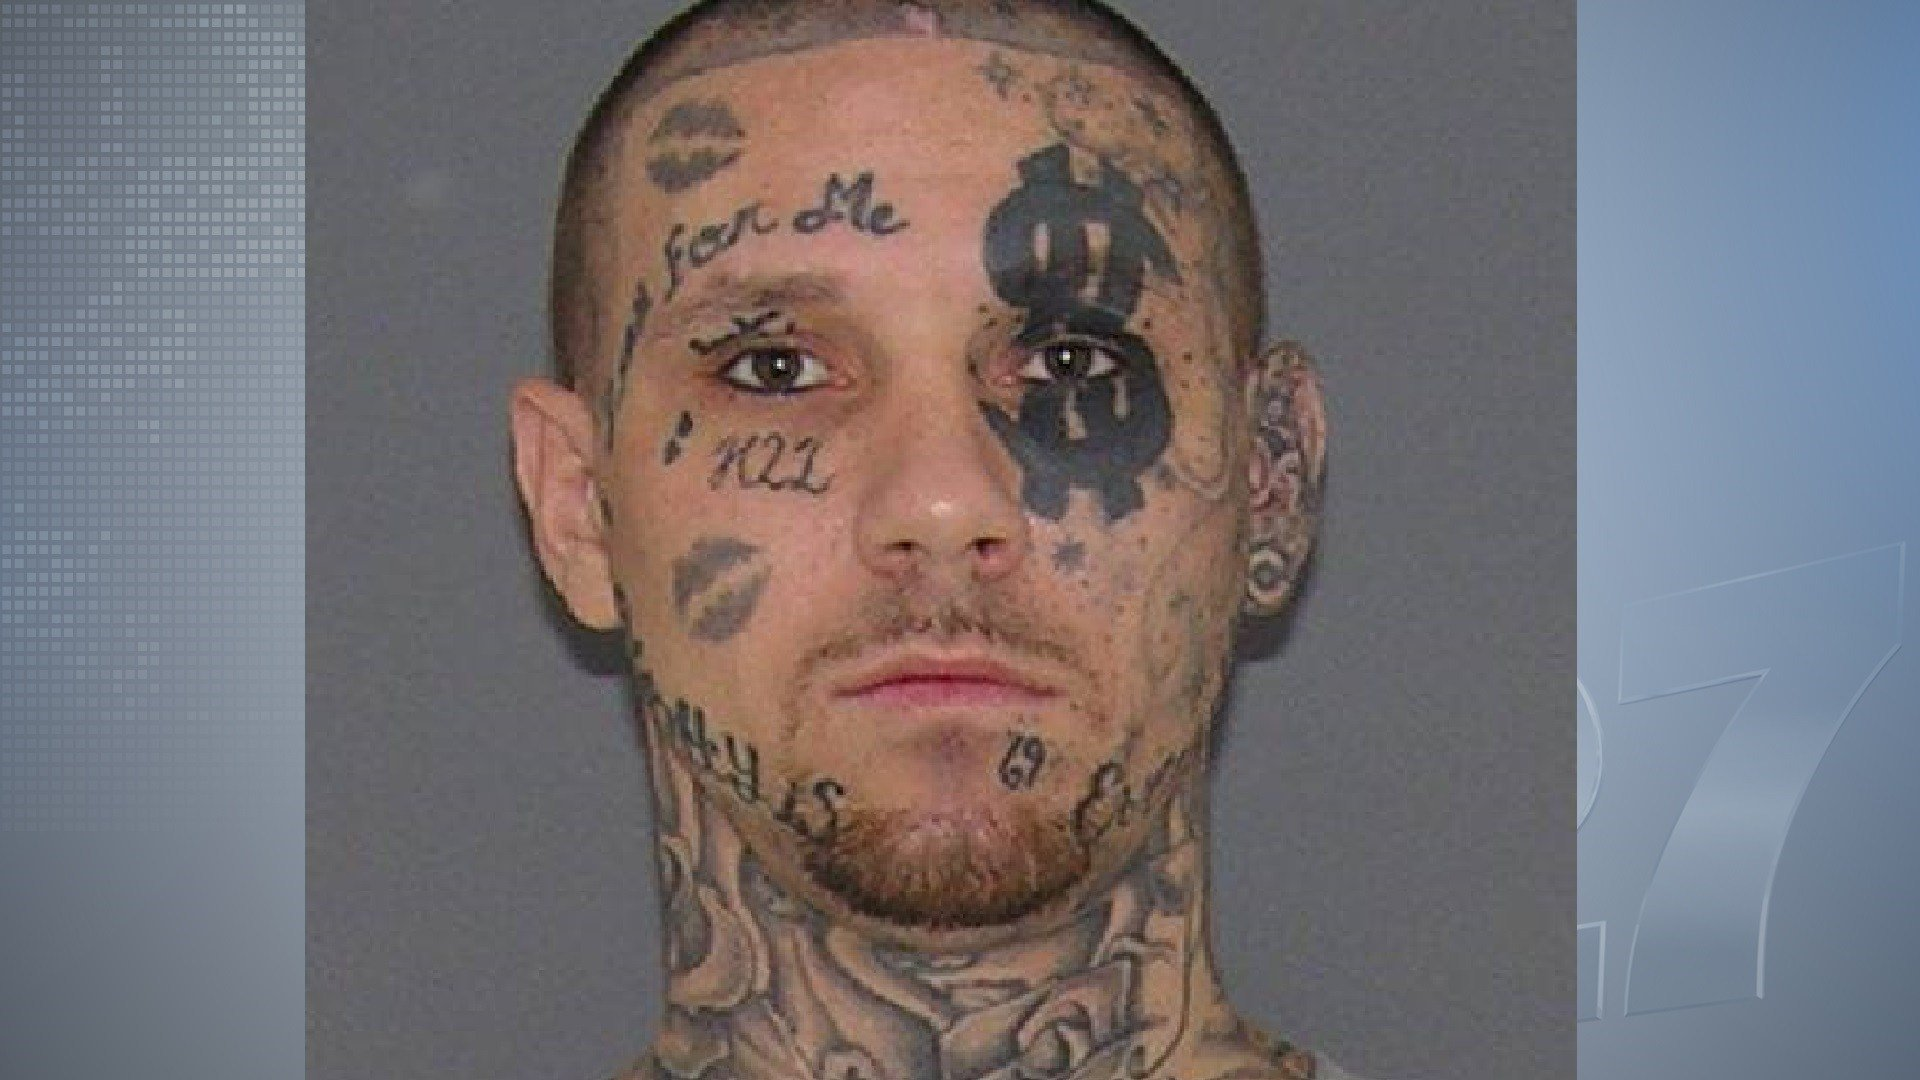 Man with tattooed face sought in OH assault case